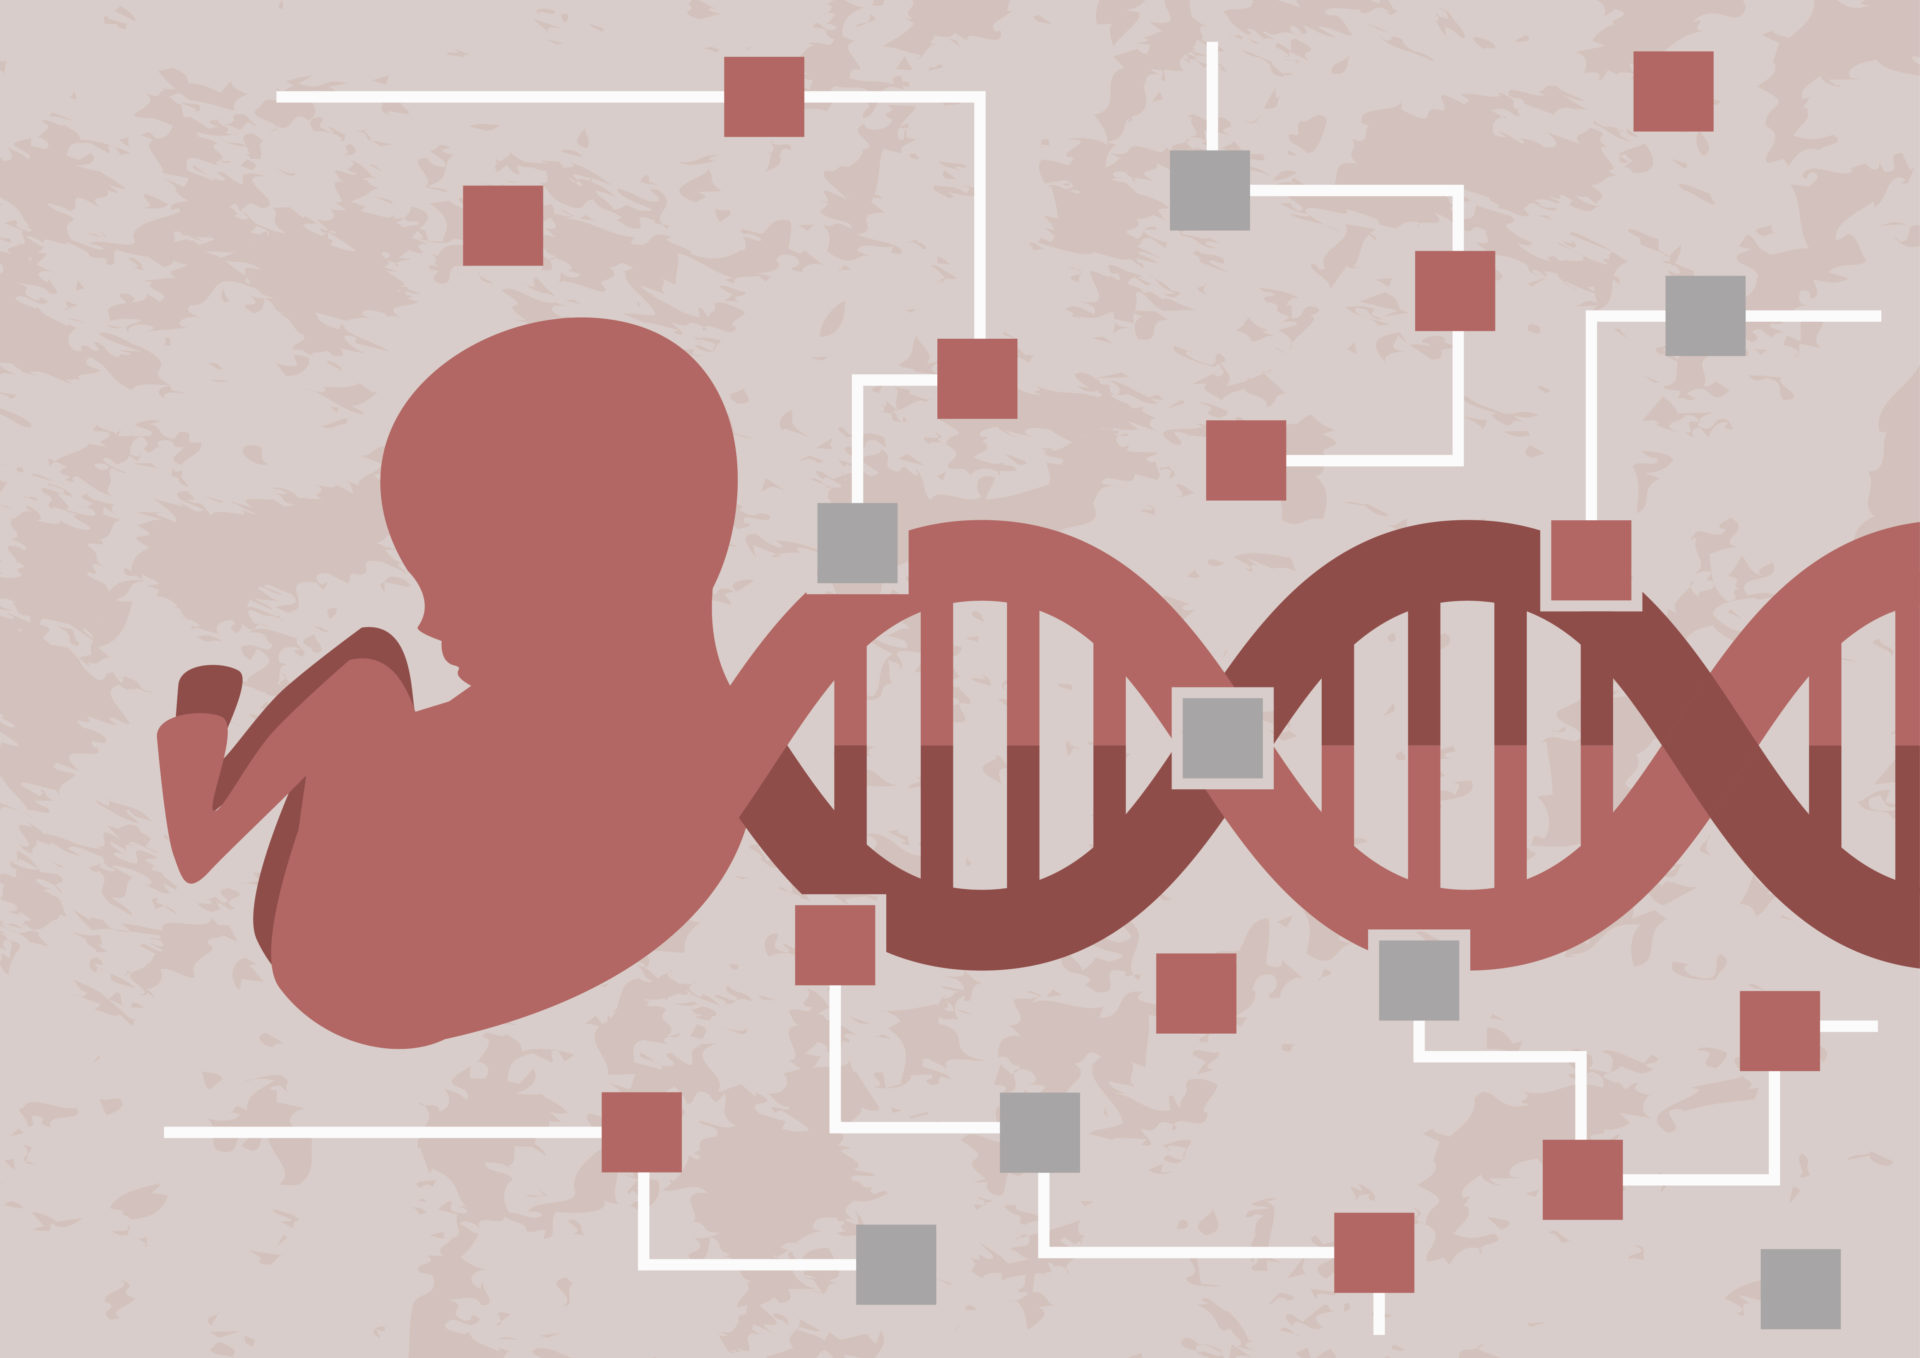 CRISPR babies: Controversial gene editing increases risk of early death, study finds